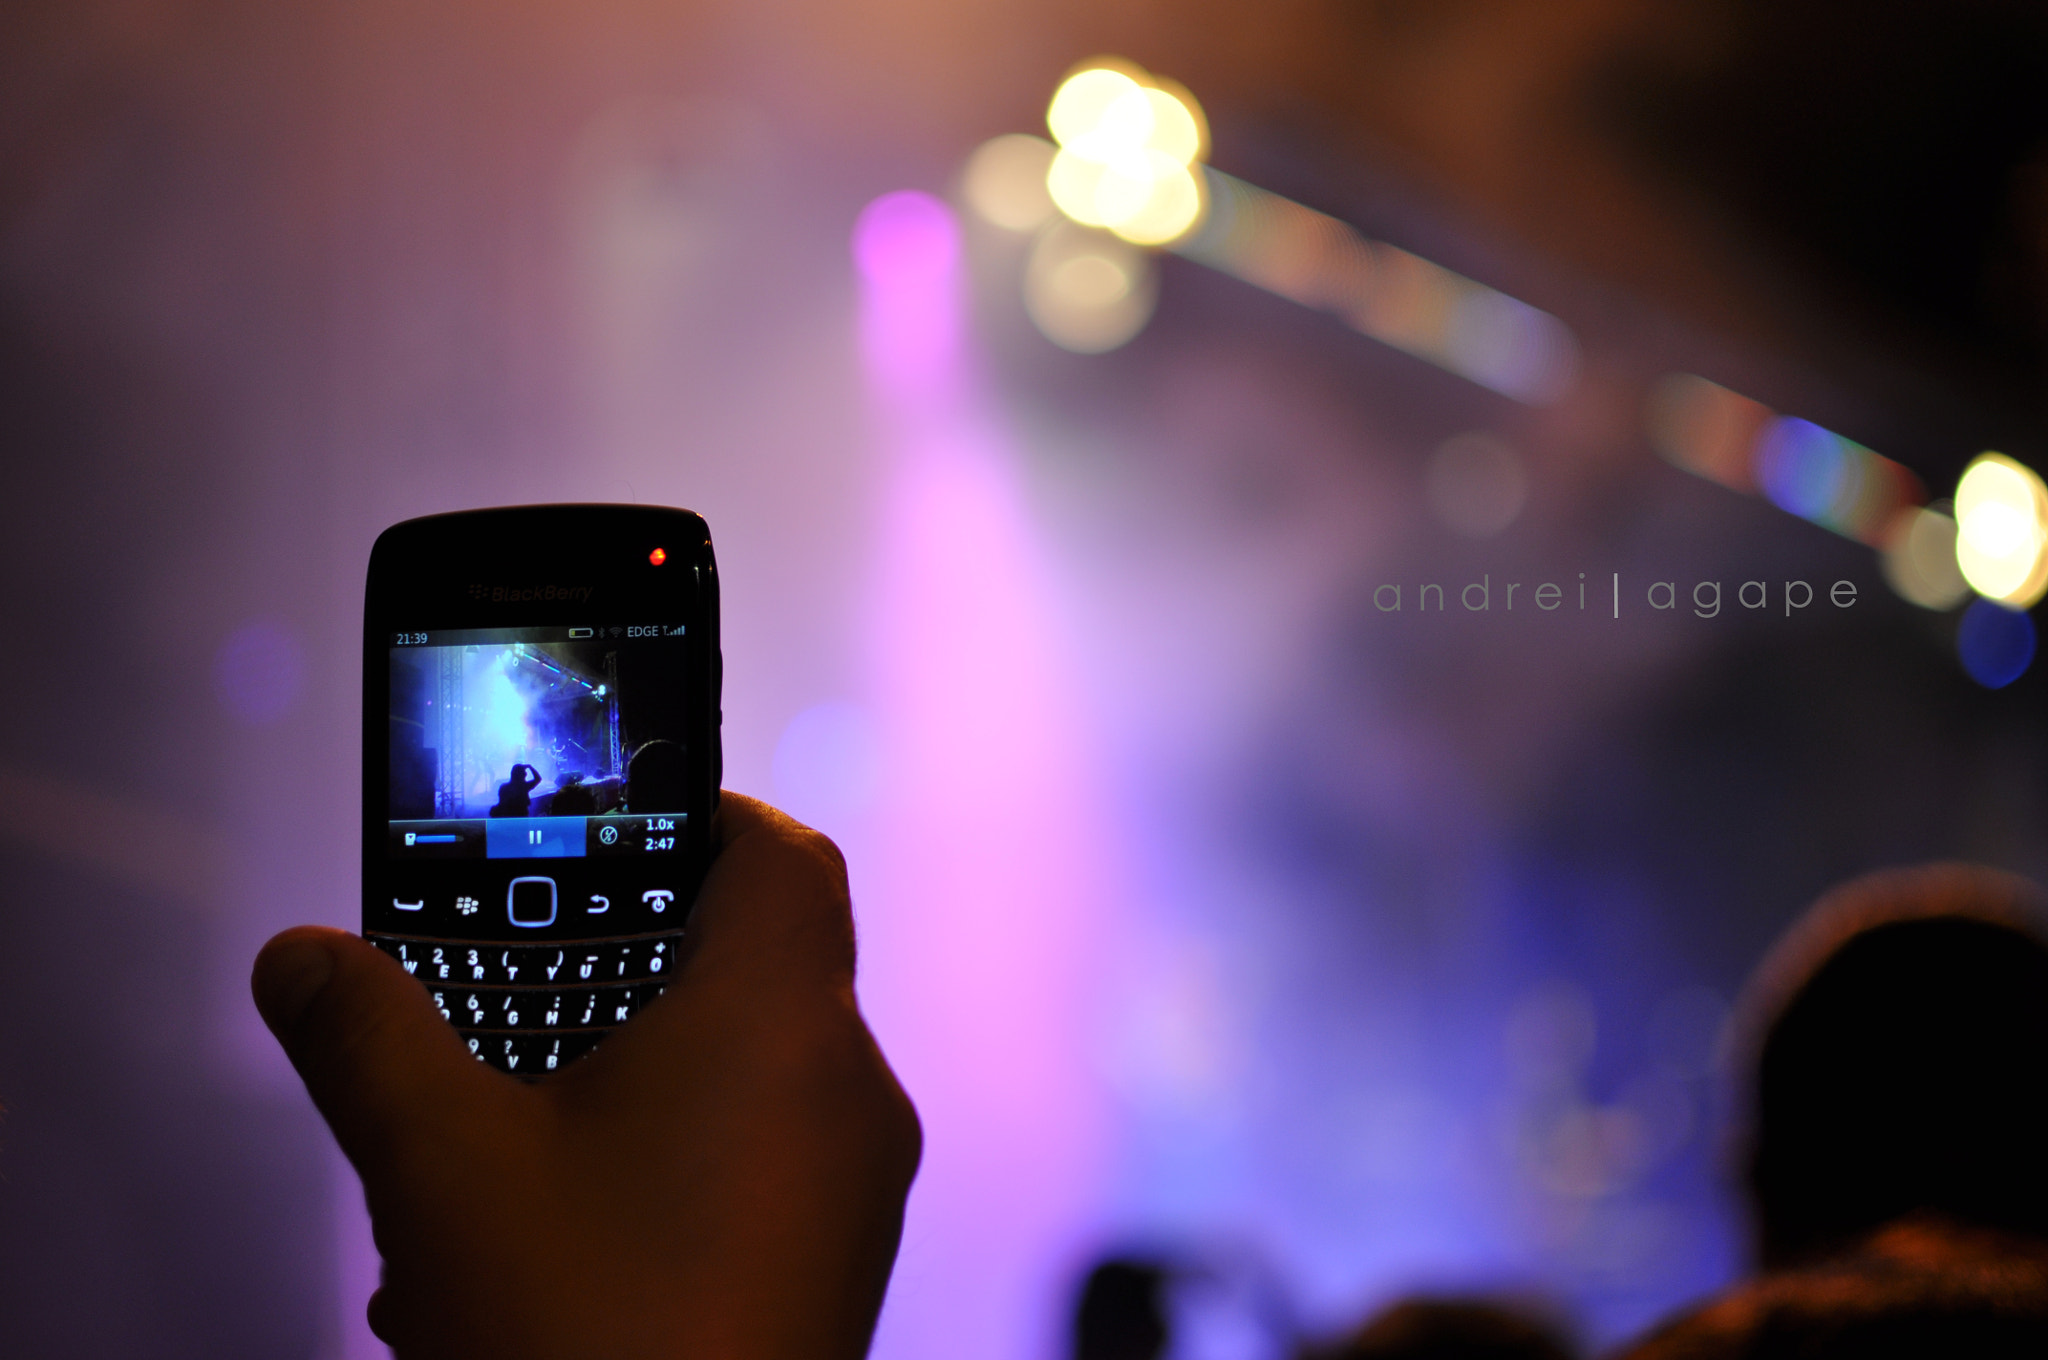 Photograph Blackberry by Andrei Agape on 500px